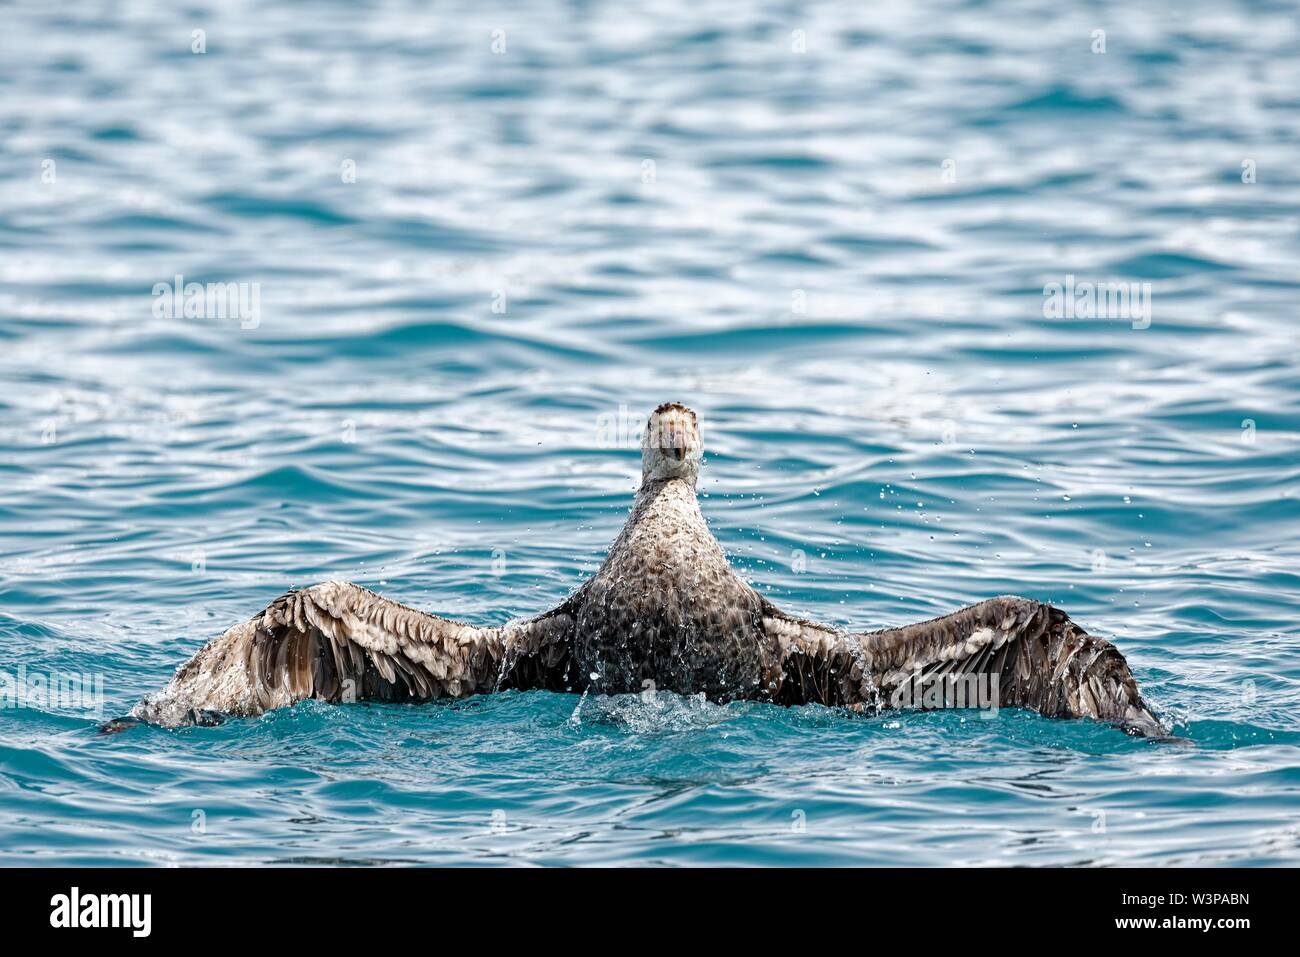 Southern giant petrel (Macronectes giganteus) swims in the South Atlantic off the coast of South Georgia, South Georgia and the South Sandwich Islands - Stock Image